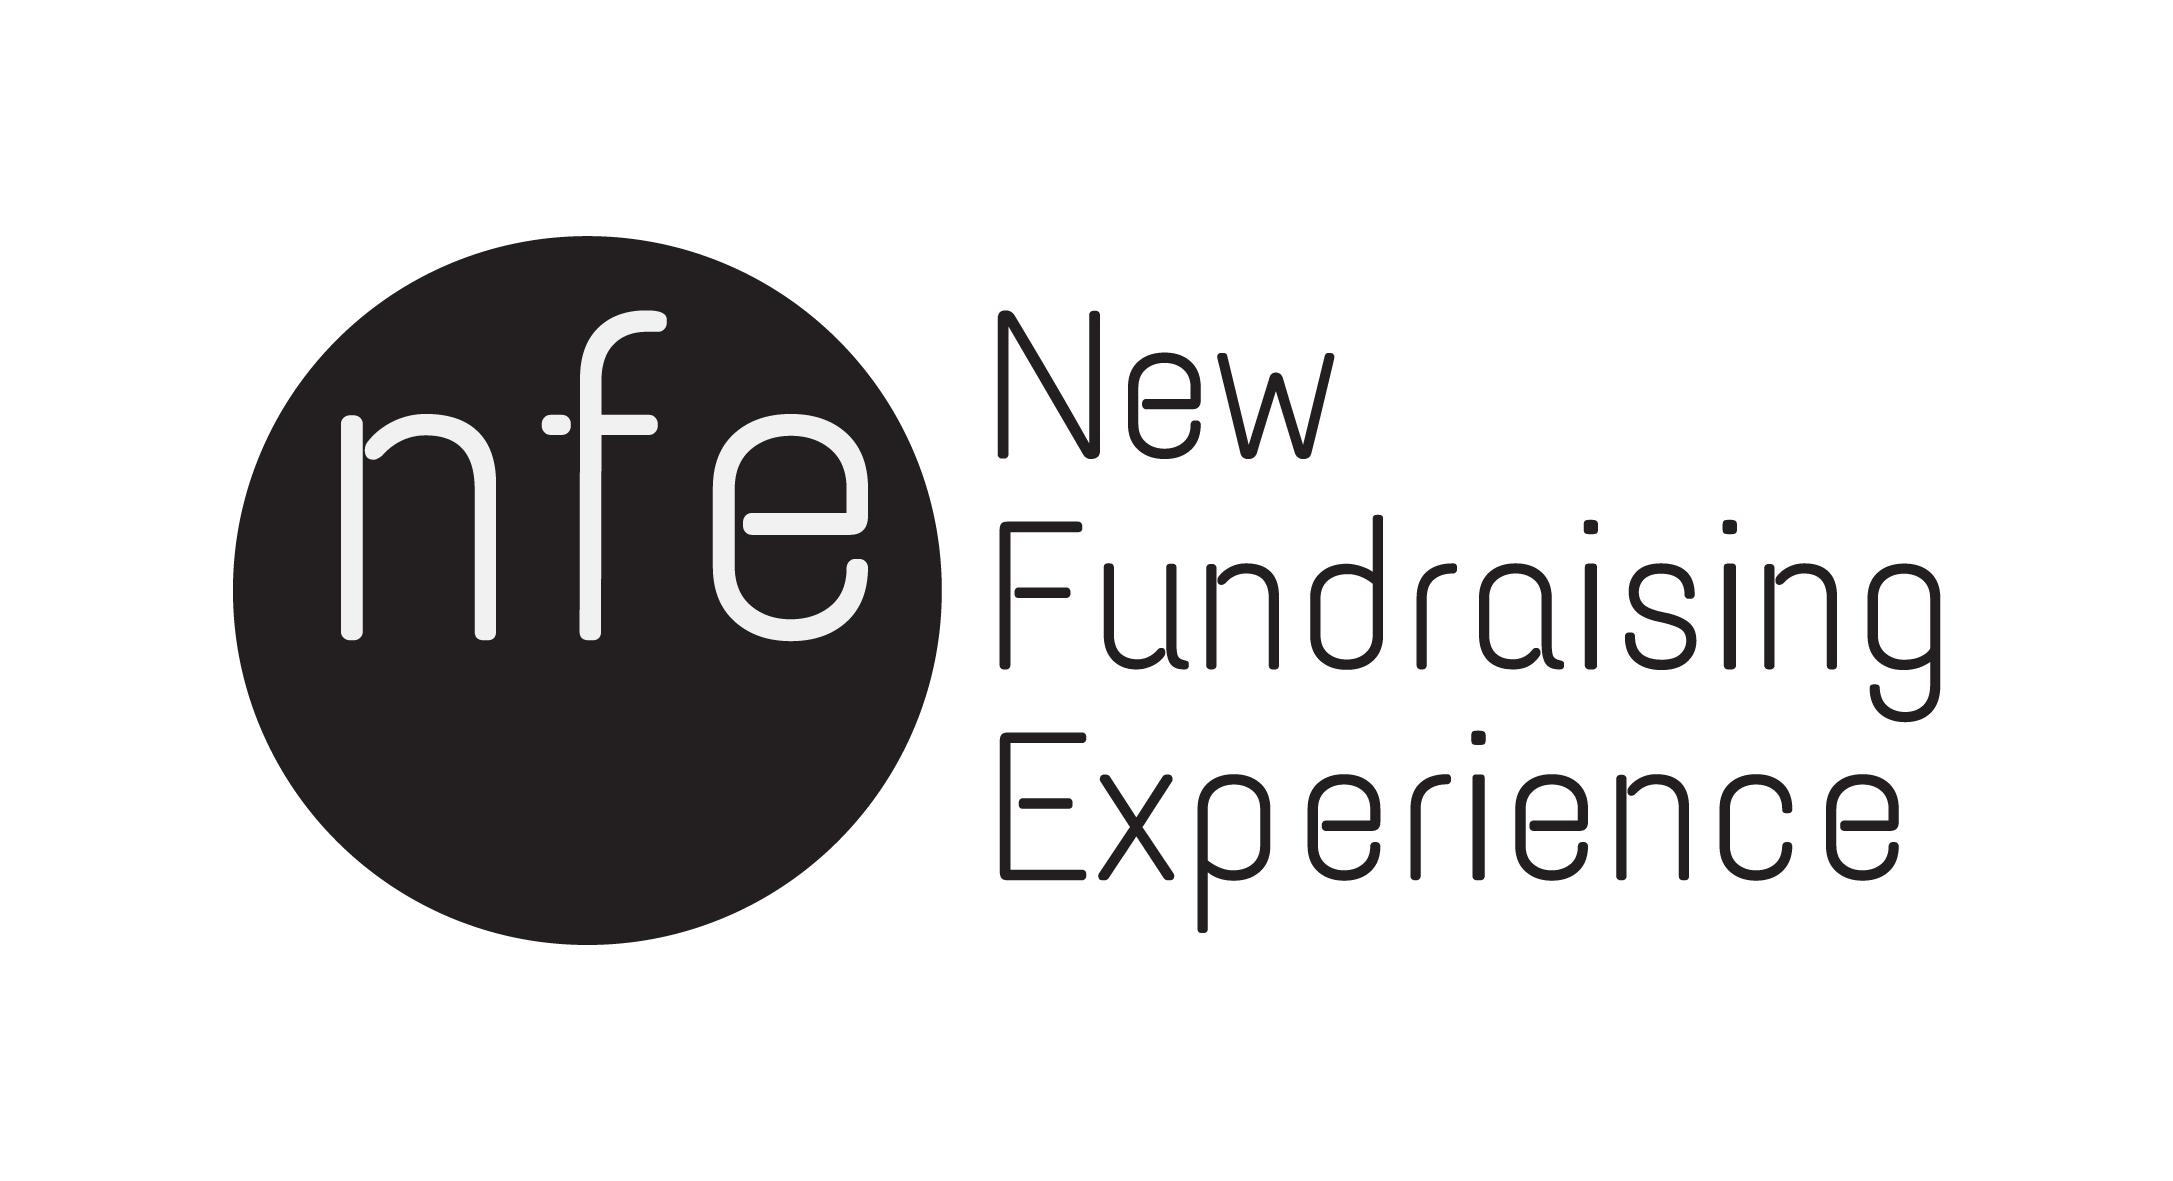 NFE New Fundraising Experience